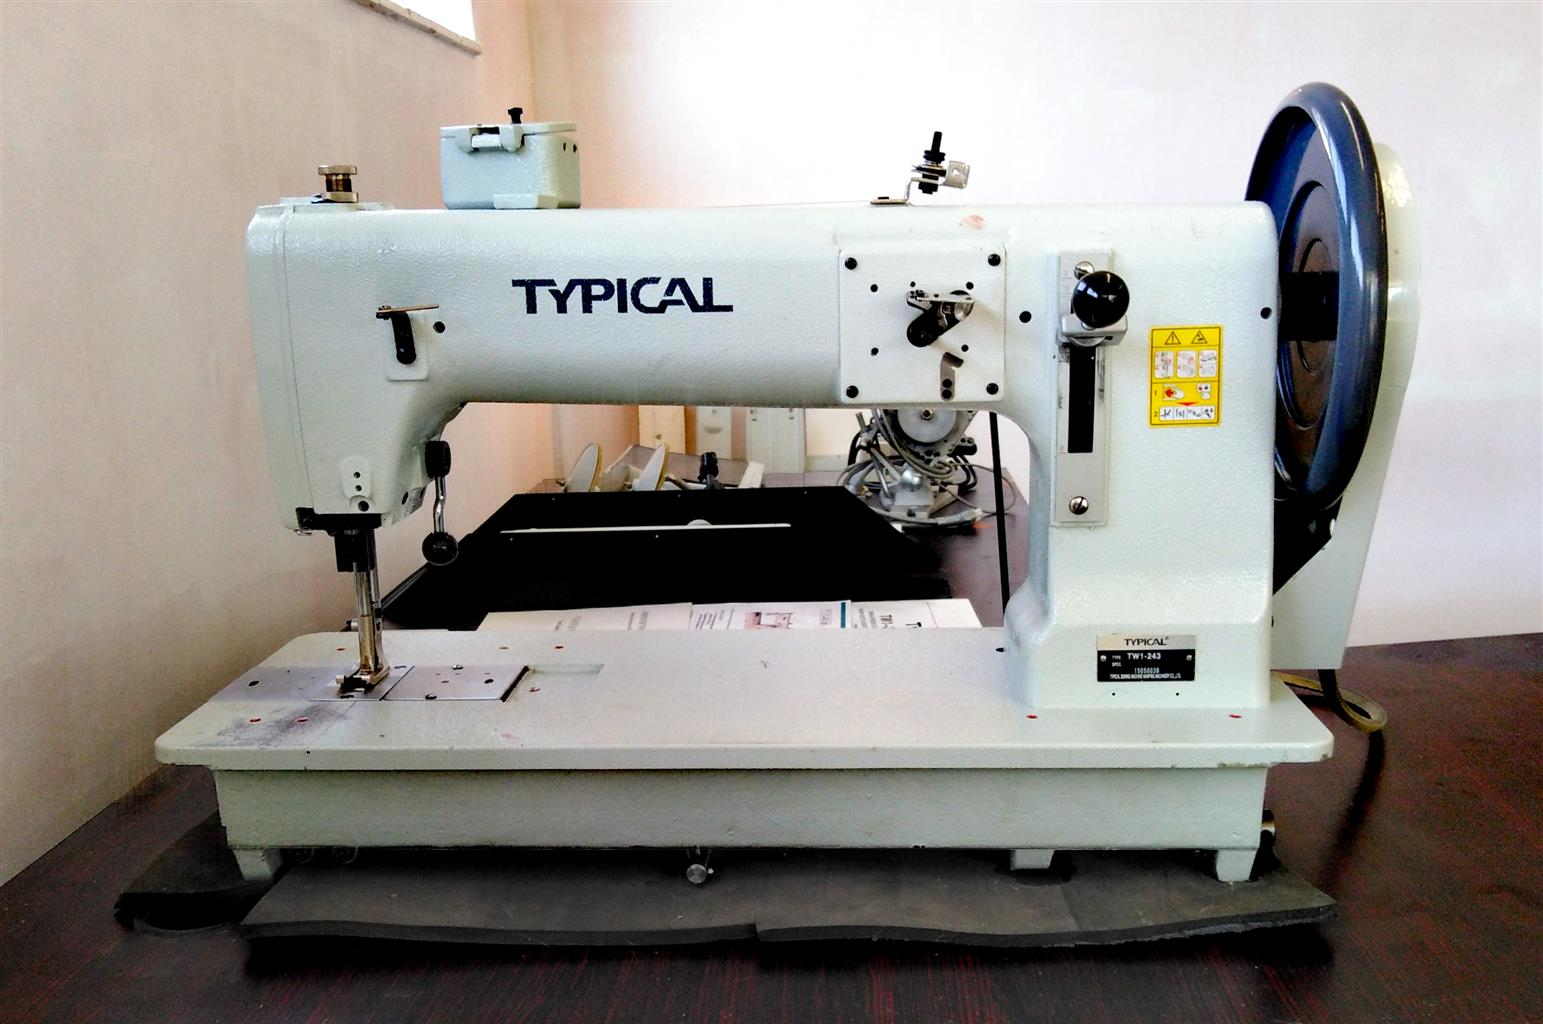 Excellent Condition Typical TW1-243 HEAVY DUTY INDUSTRIAL SEWING MACHINE